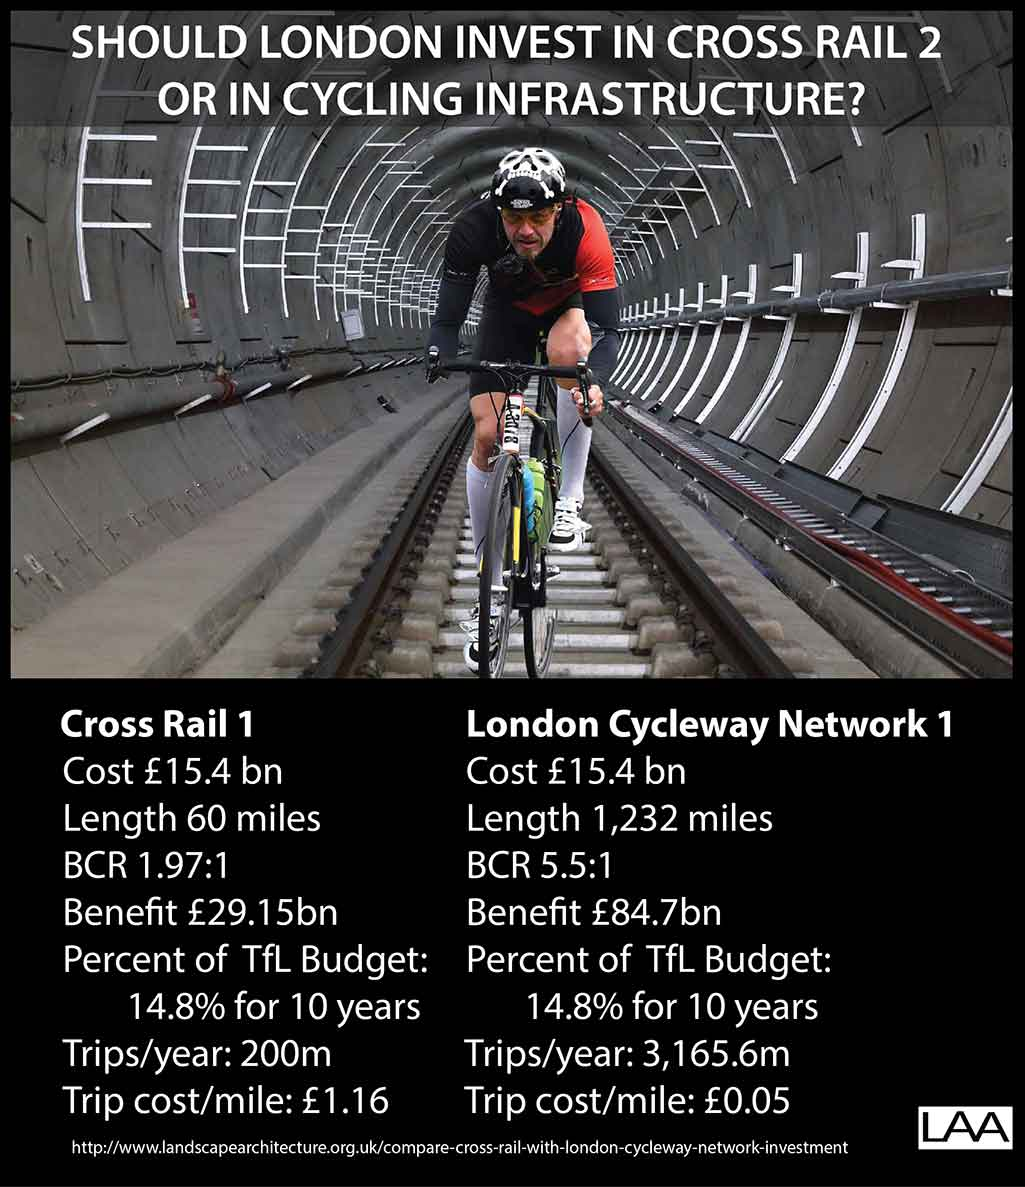 Should London invest in Crossrail 2 or in cycling infrastructure?